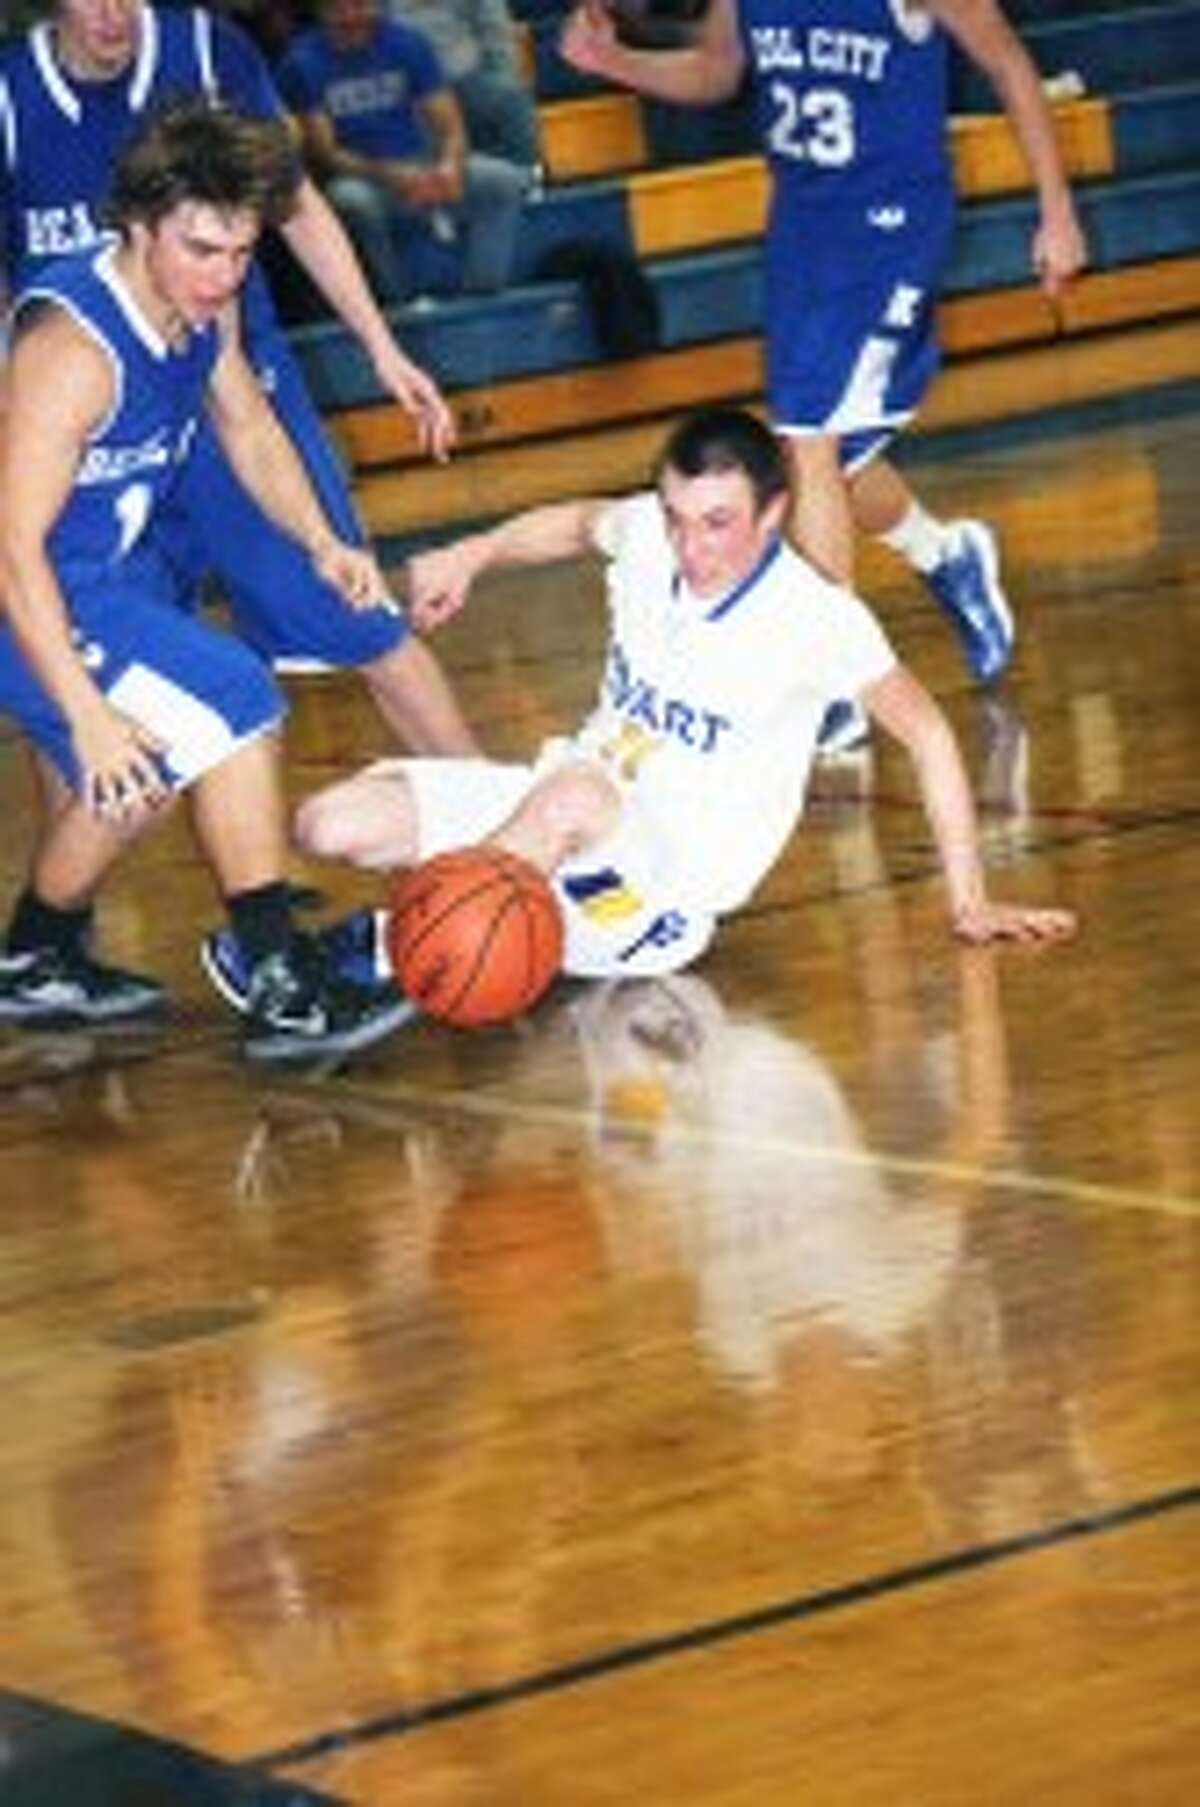 IMPRESSIVE WIN: Jared Pattee of Evart goes after the ball against Beal City. (Herald Review photo/John Raffel)